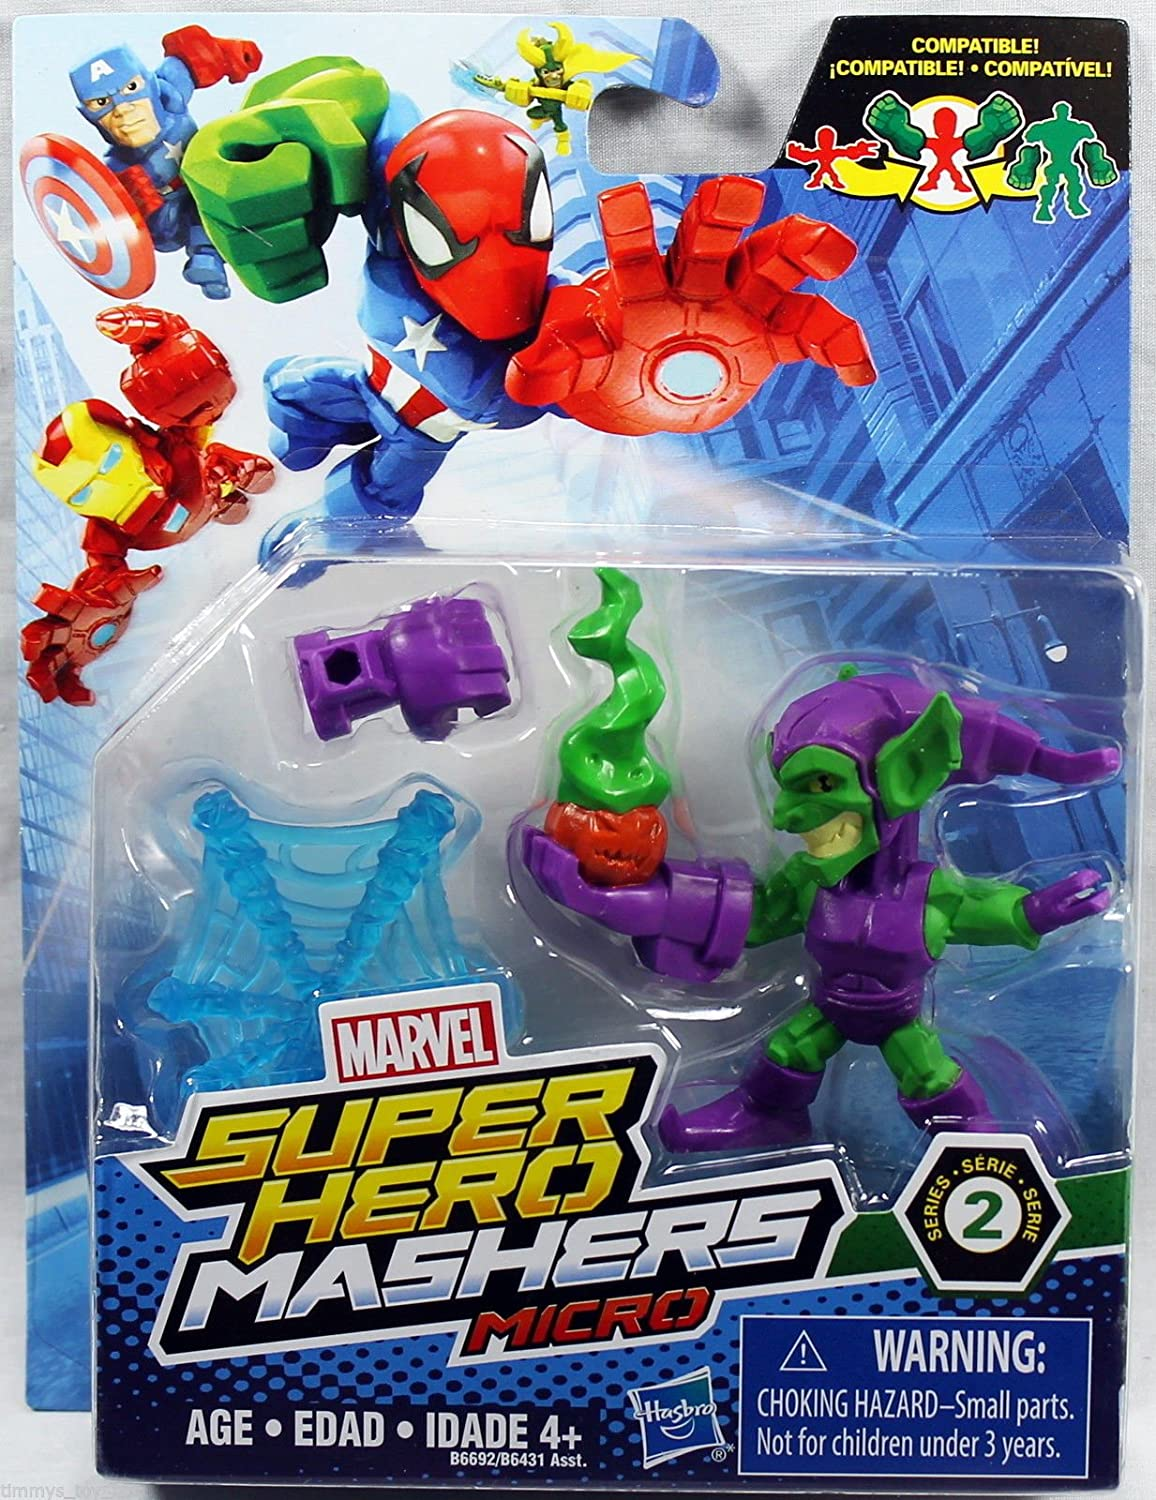 Marvel Super Hero Mashers Micro Series 2 Mini Figure - Green Goblin ^G#fbhre-h4 8rdsf-tg1324324 Fotelilona